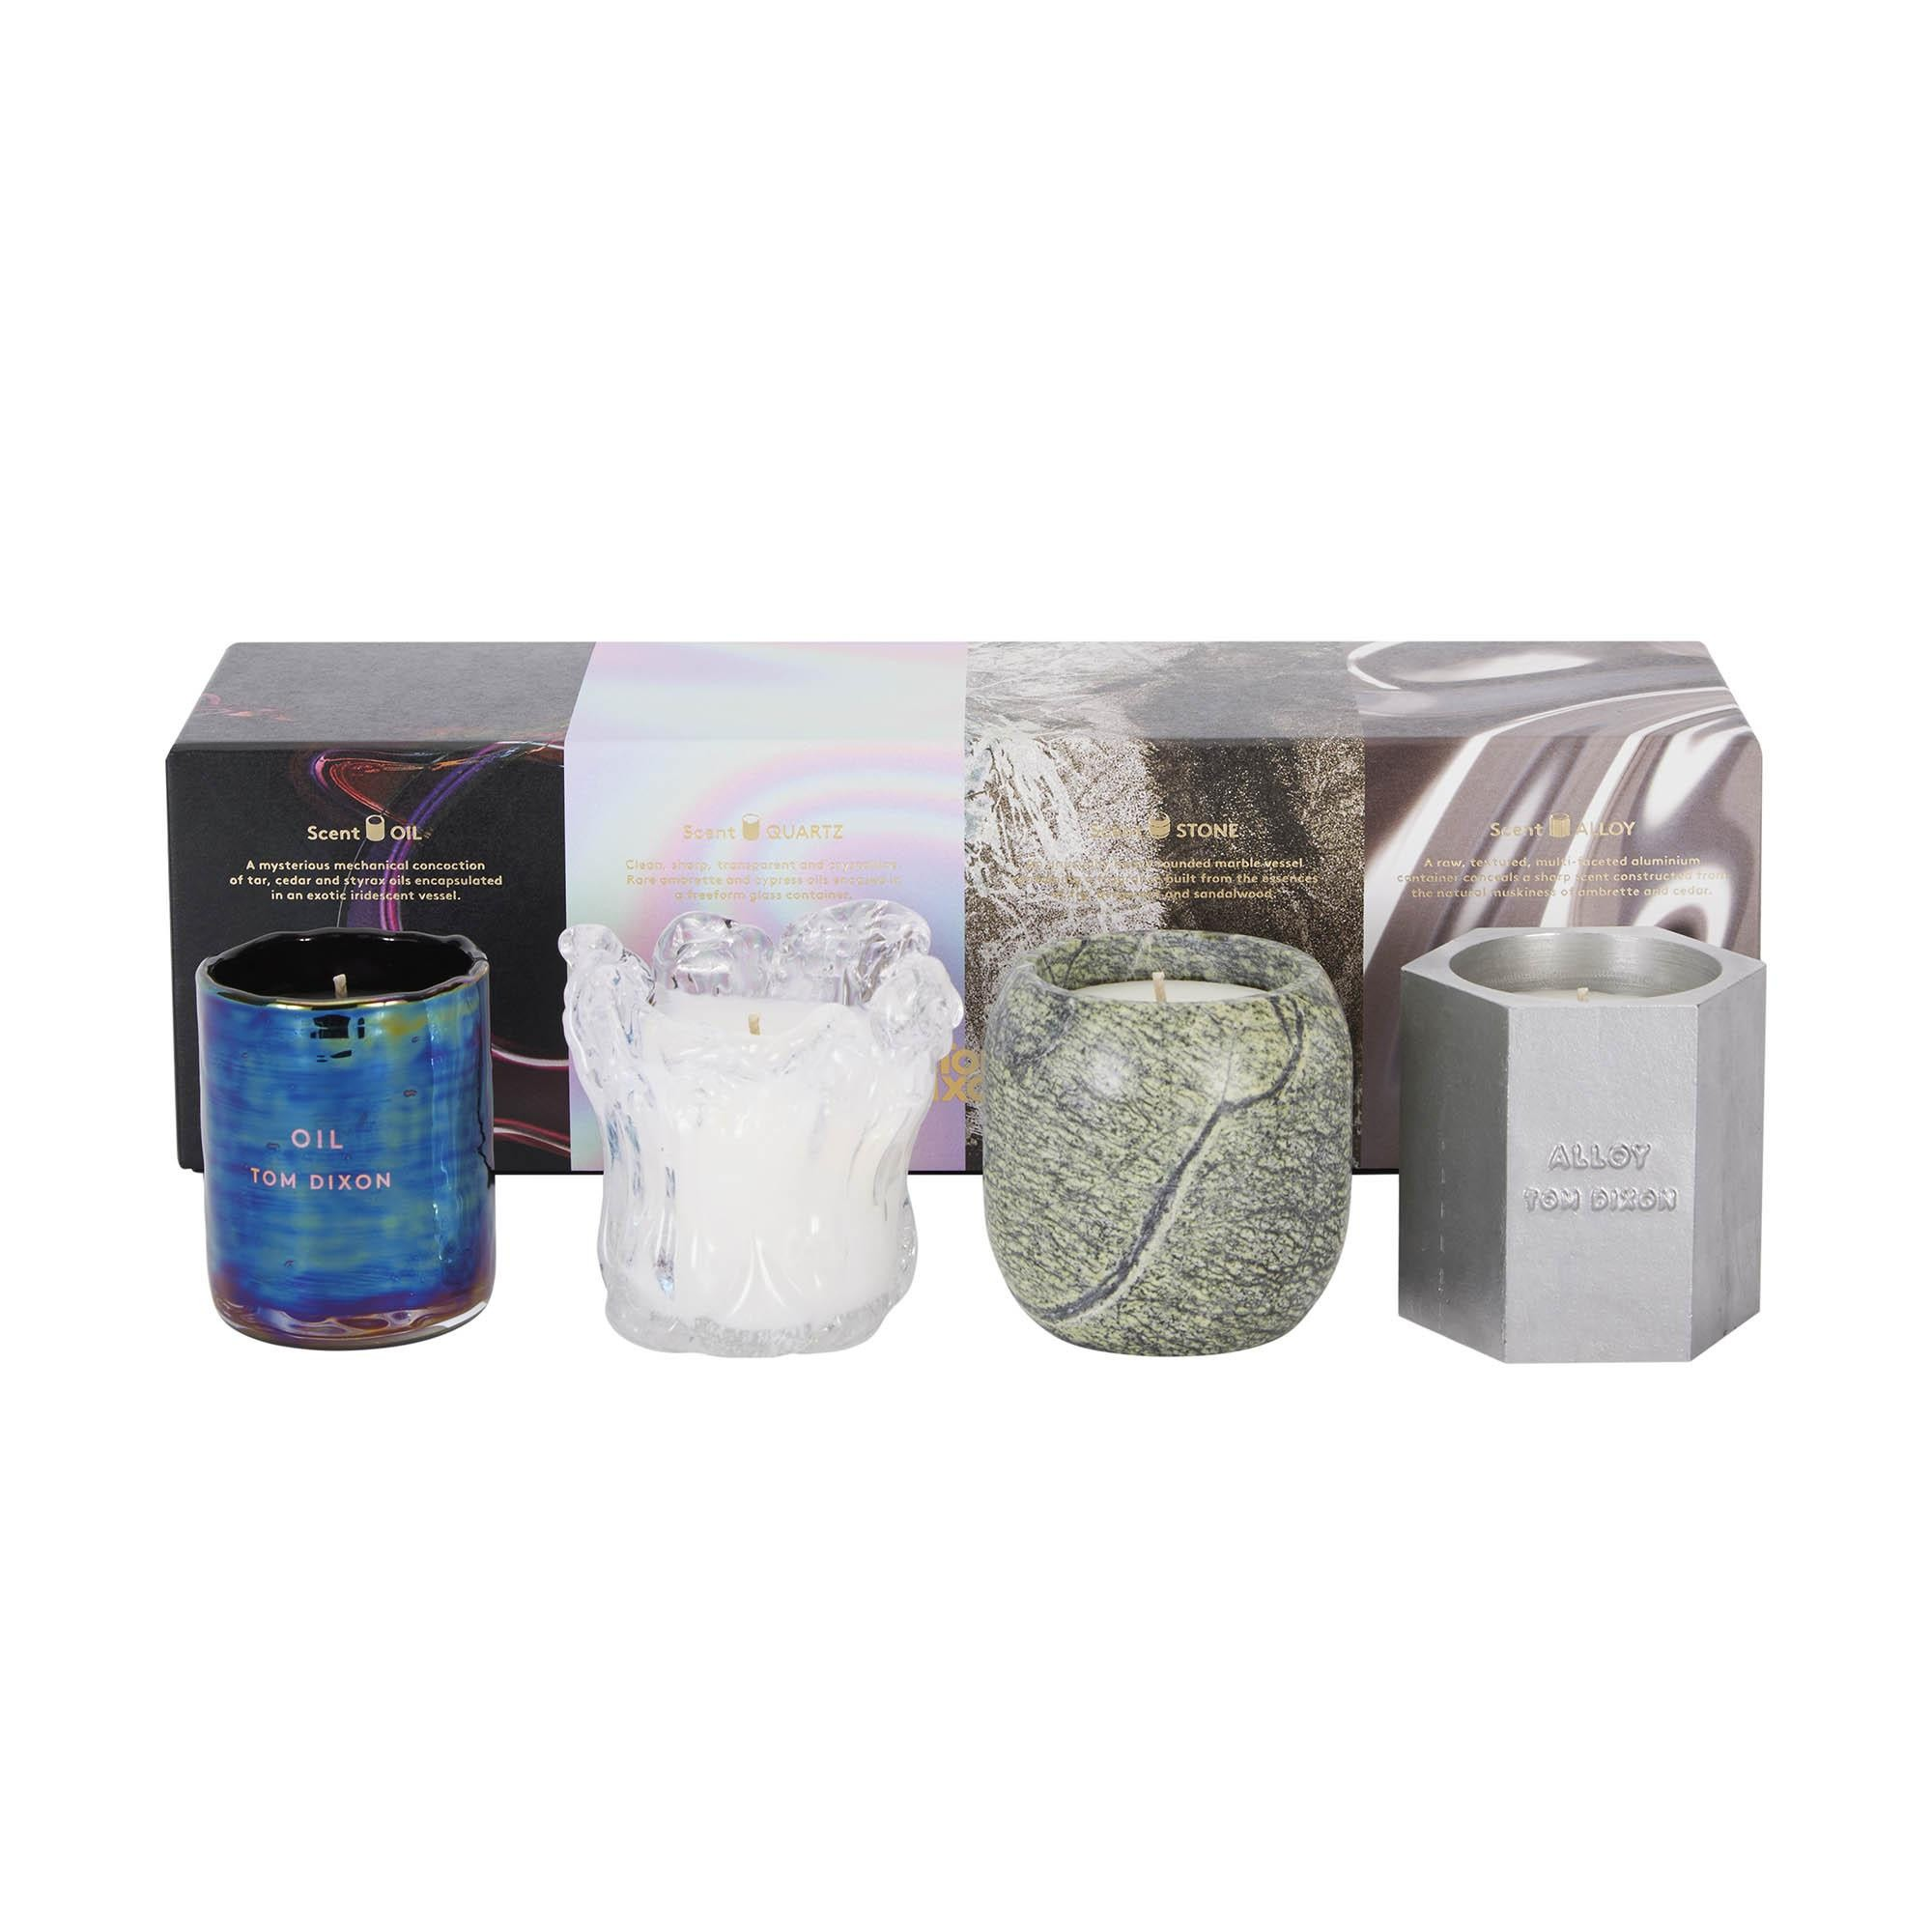 Outdoor Led Kerzen Materialism Gift Set Candles